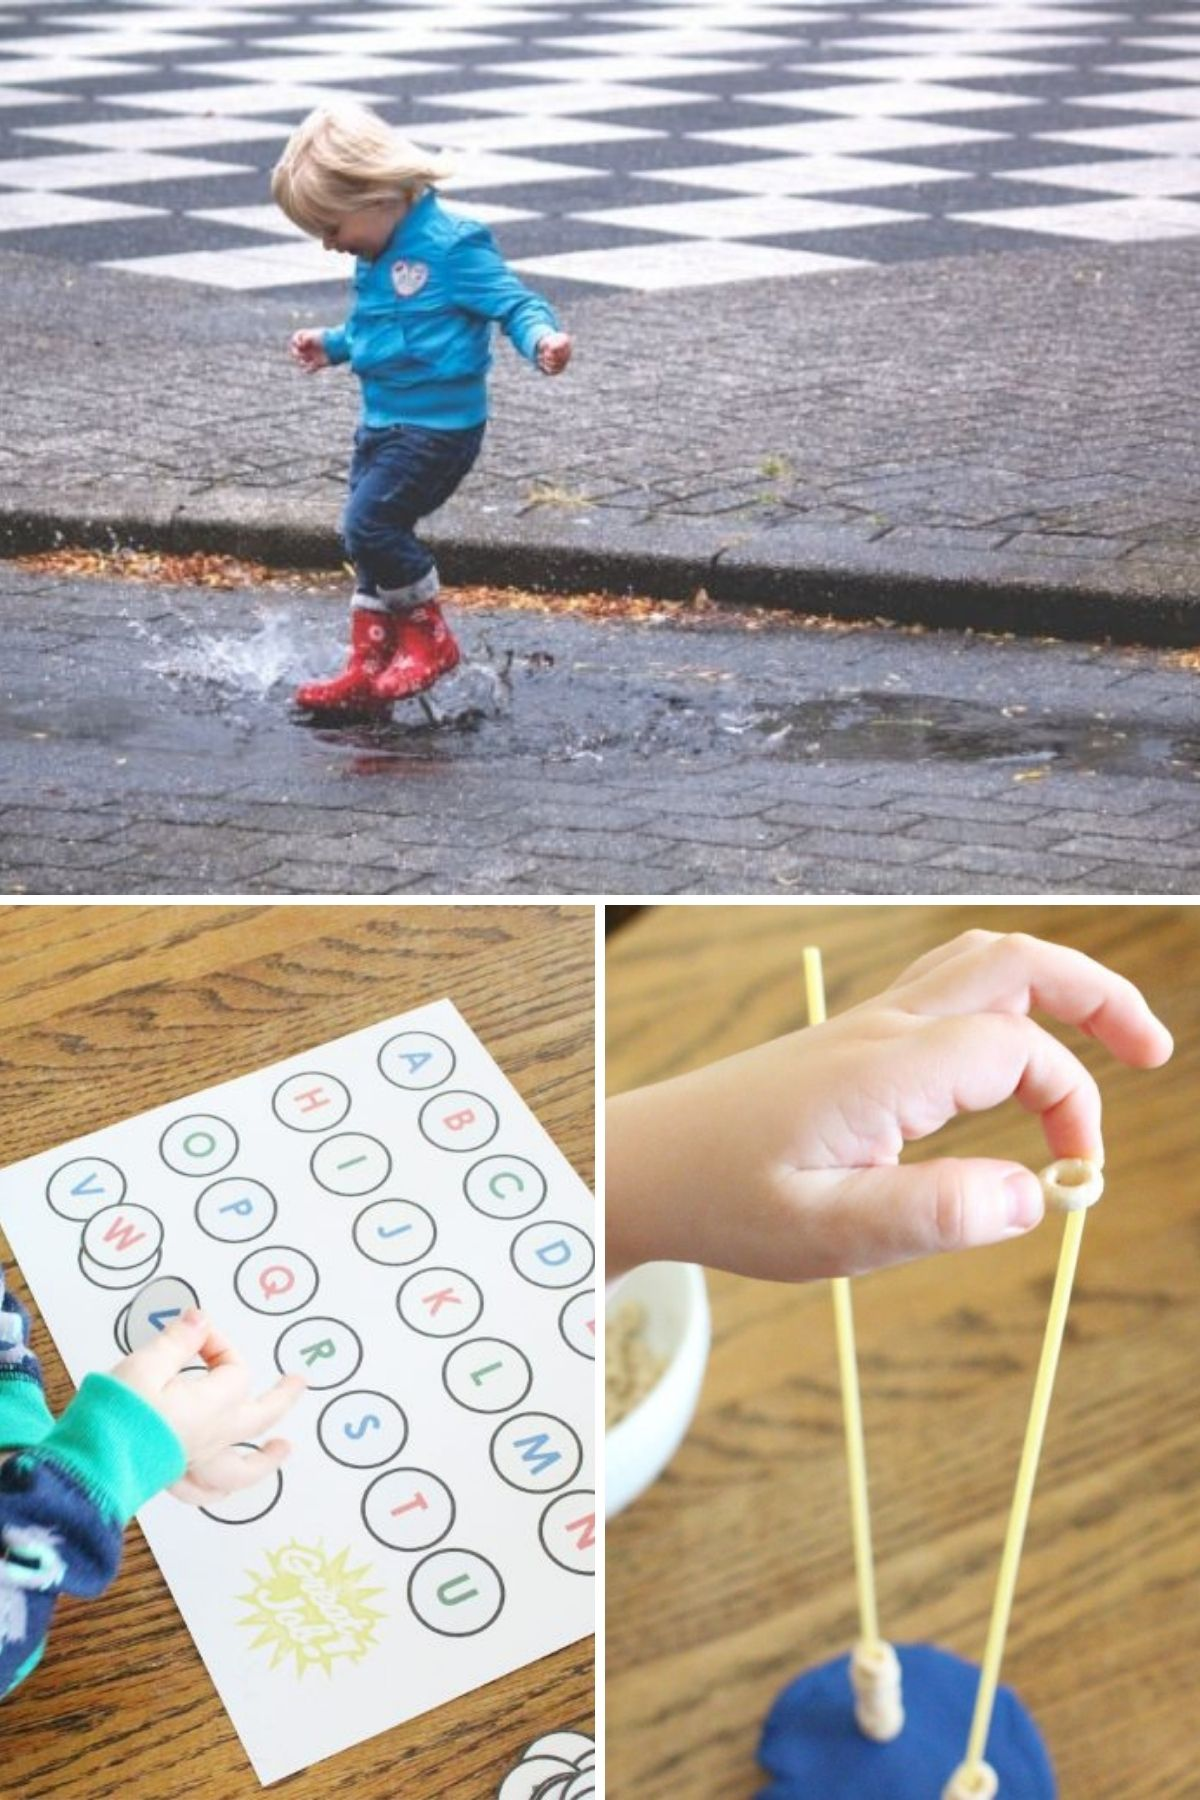 rainy day toddler activities collage of toddler jumping in puddles and learning ABCs and playing with cheerios